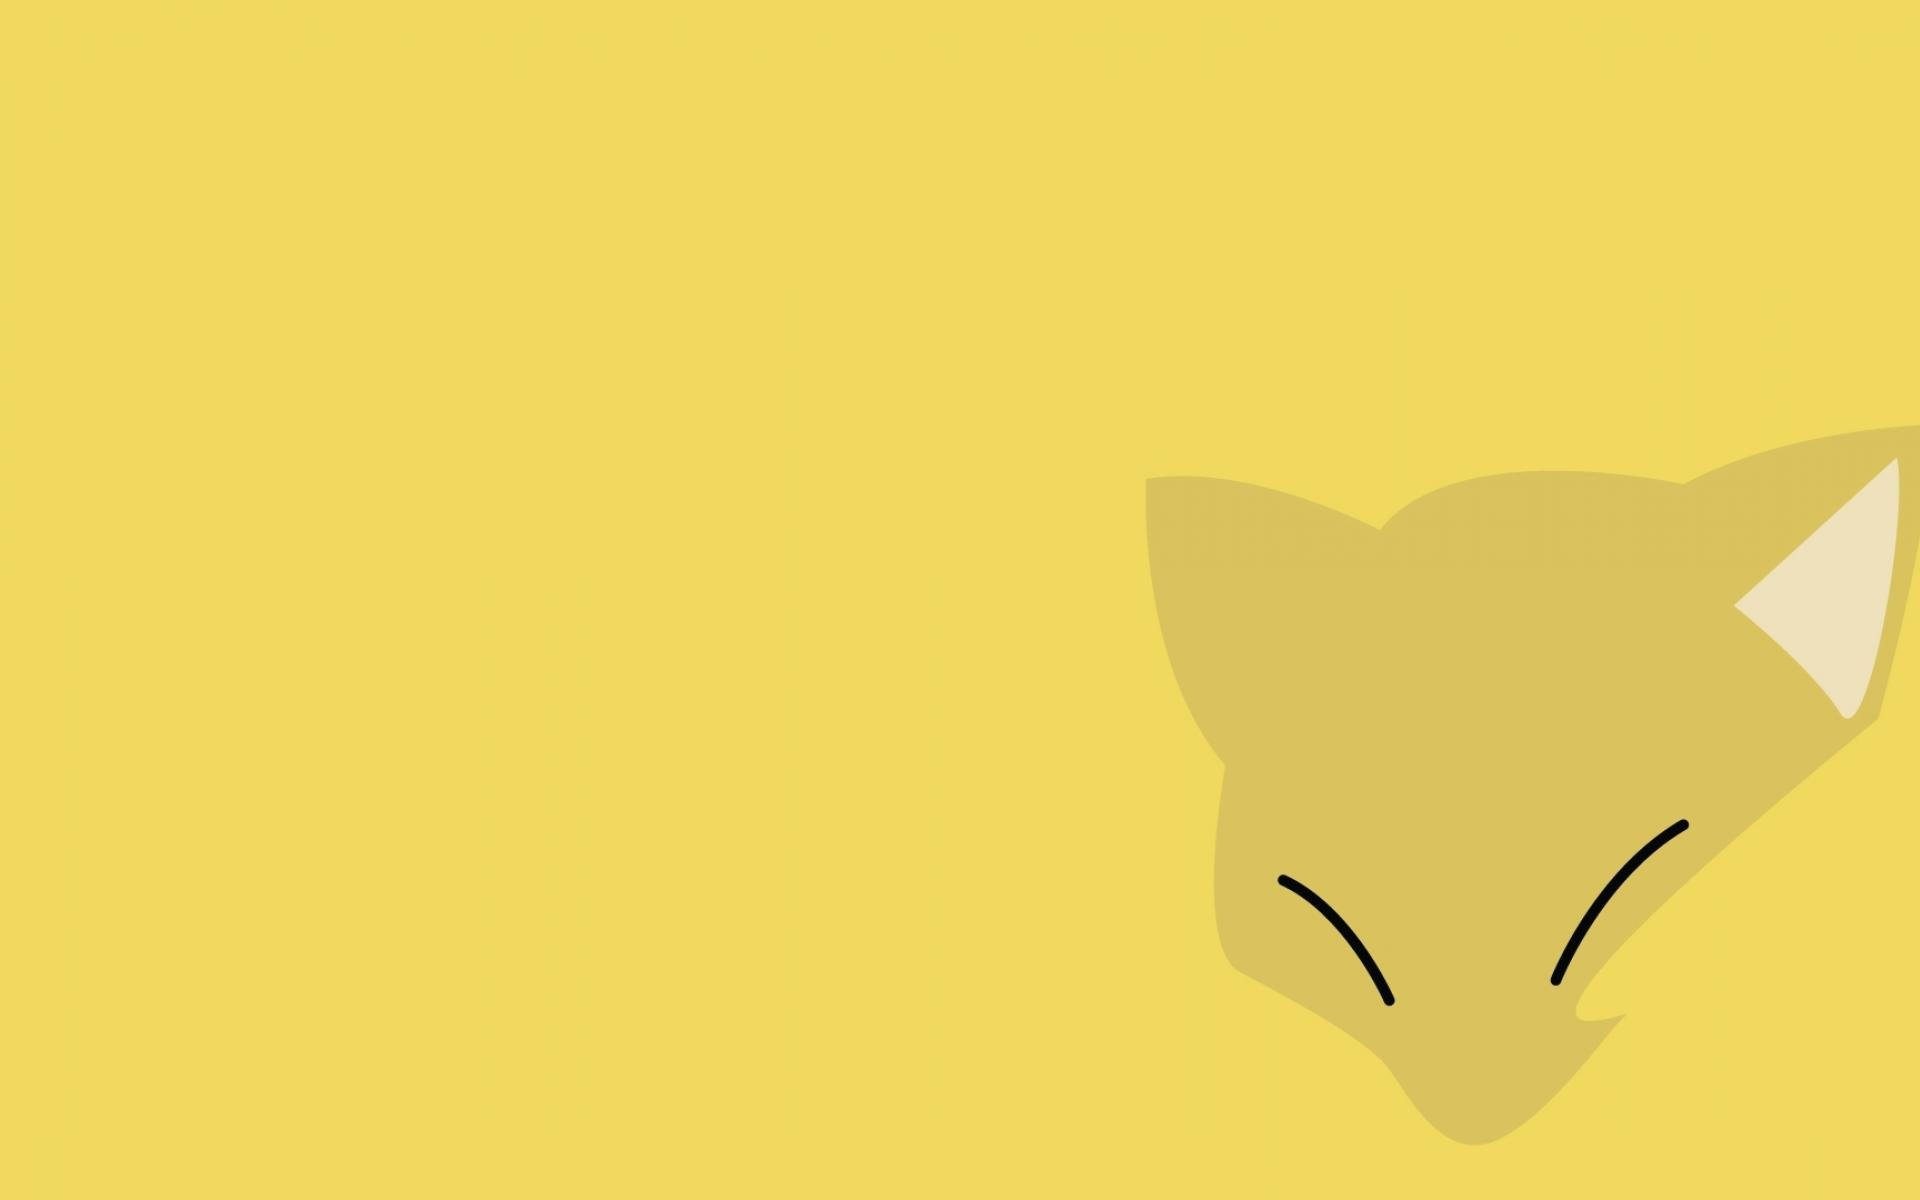 abra pokemon simple background best widescreen awesome 1920x1200